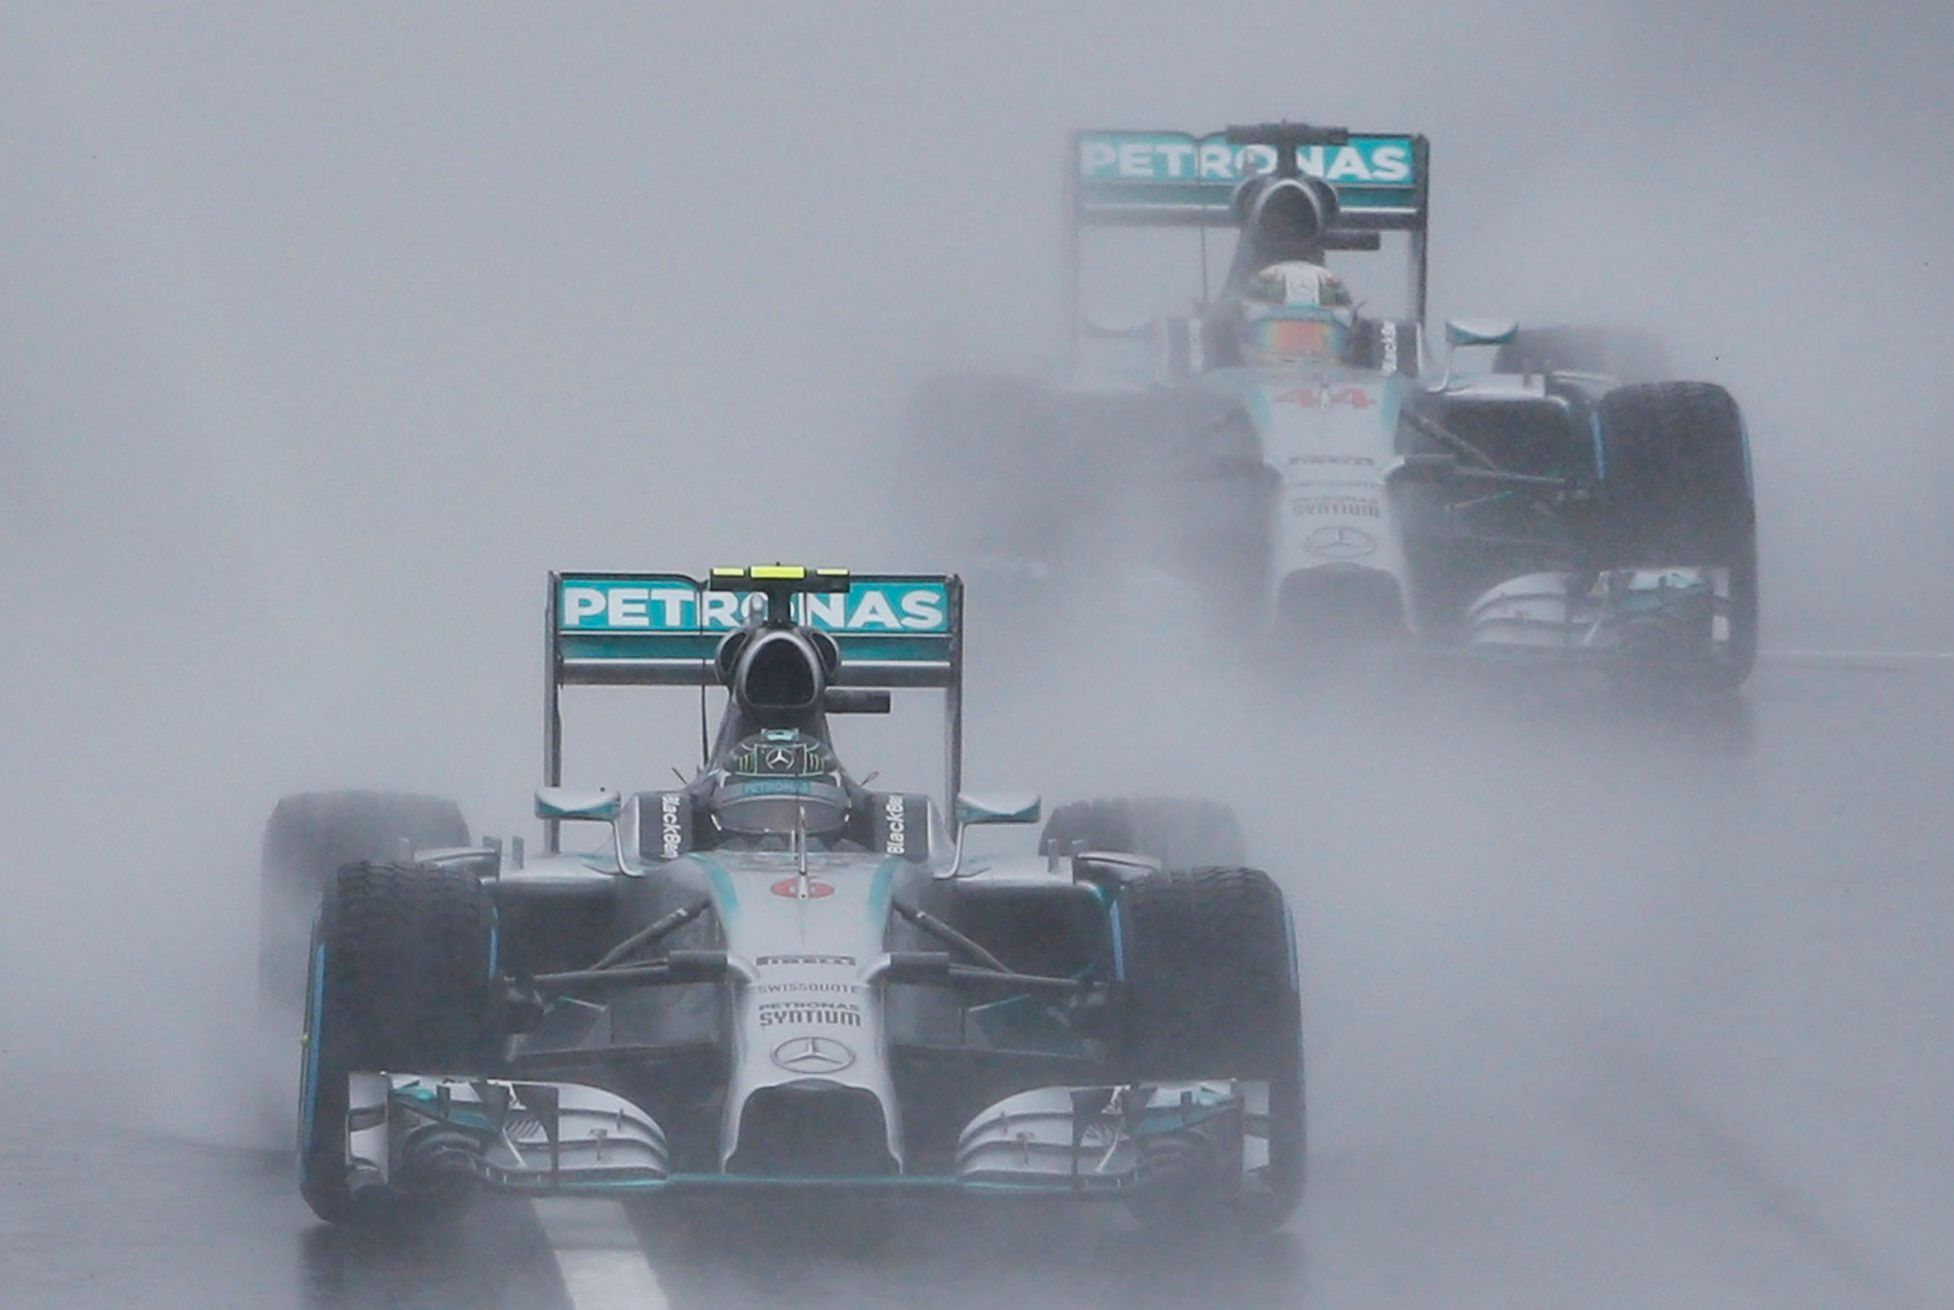 Mercedes Formula One driver Rosberg of Germany leads team mate Hamilton of Britain behind a safety car as they start the first lap of the rain-affected Japanese F1 Grand Prix at the Suzuka Circuit